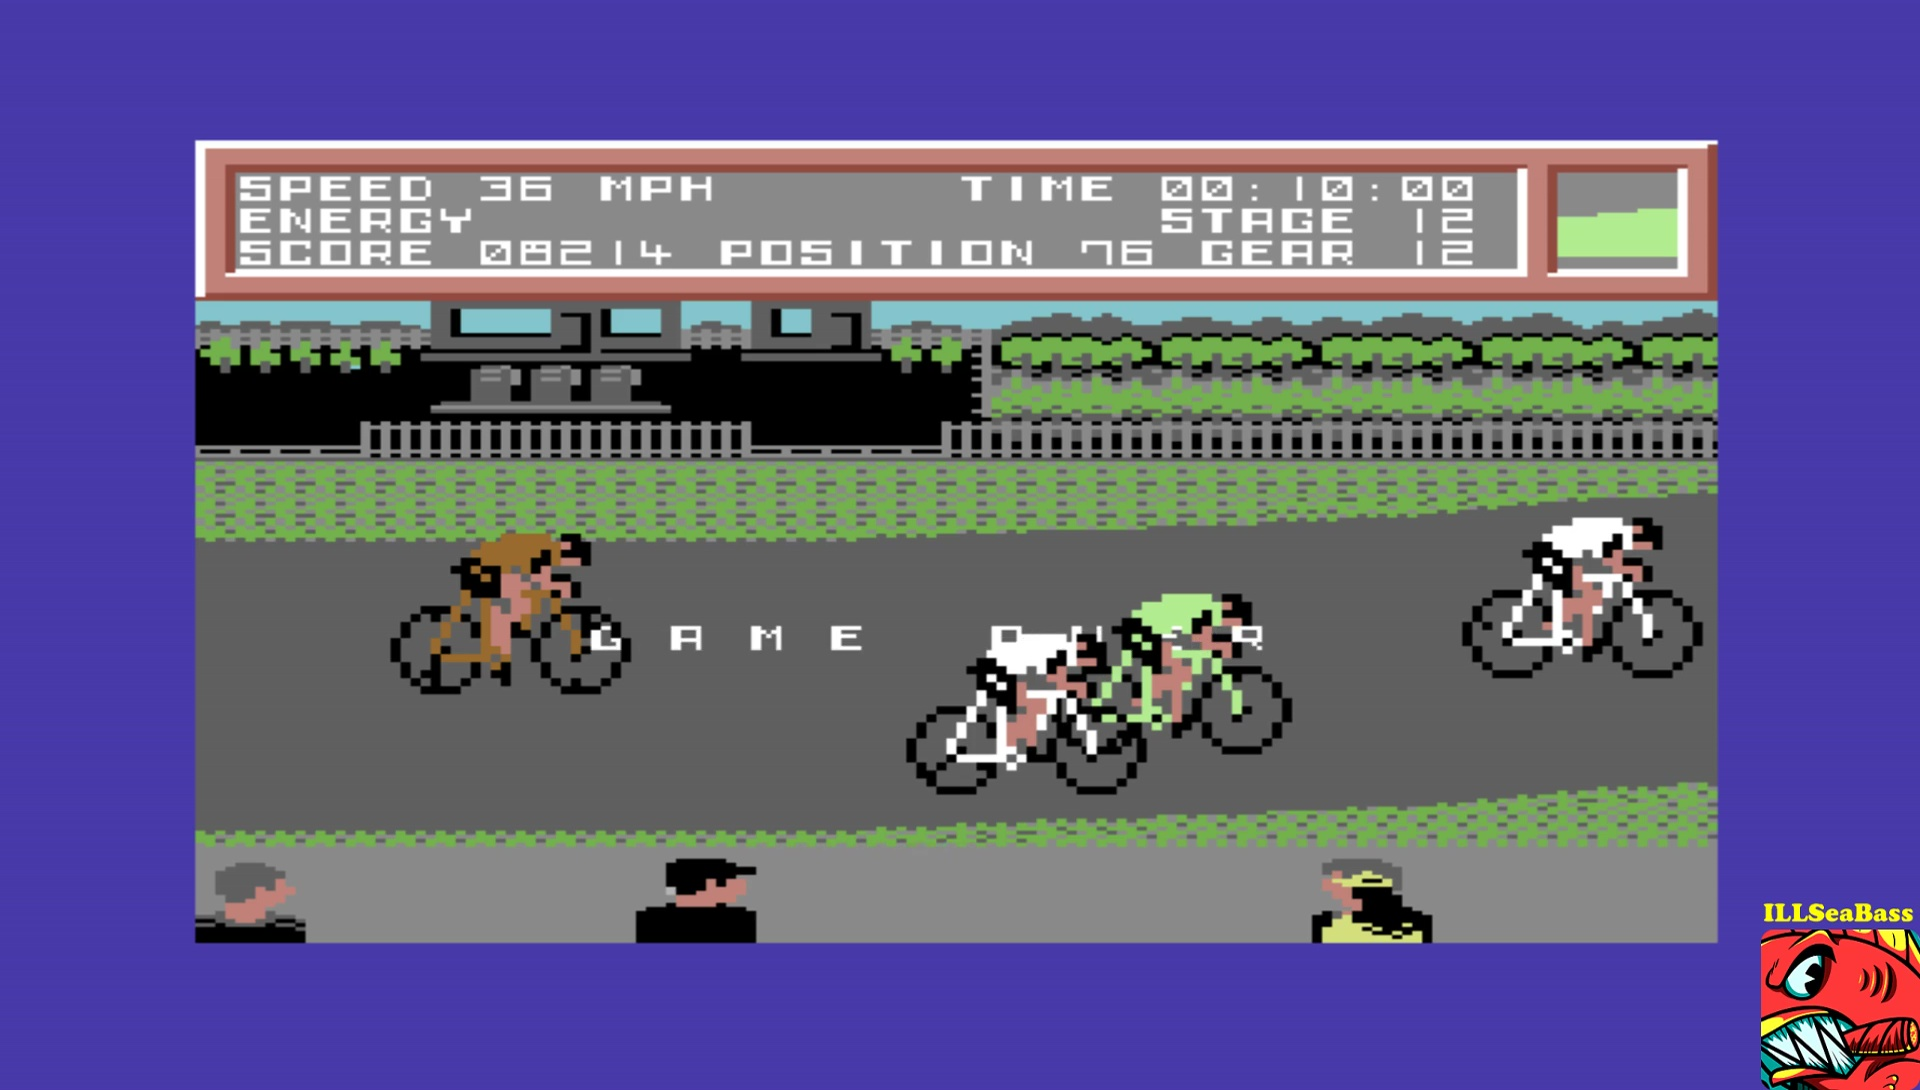 ILLSeaBass: Milk Race (Commodore 64 Emulated) 8,214 points on 2017-04-10 13:28:19